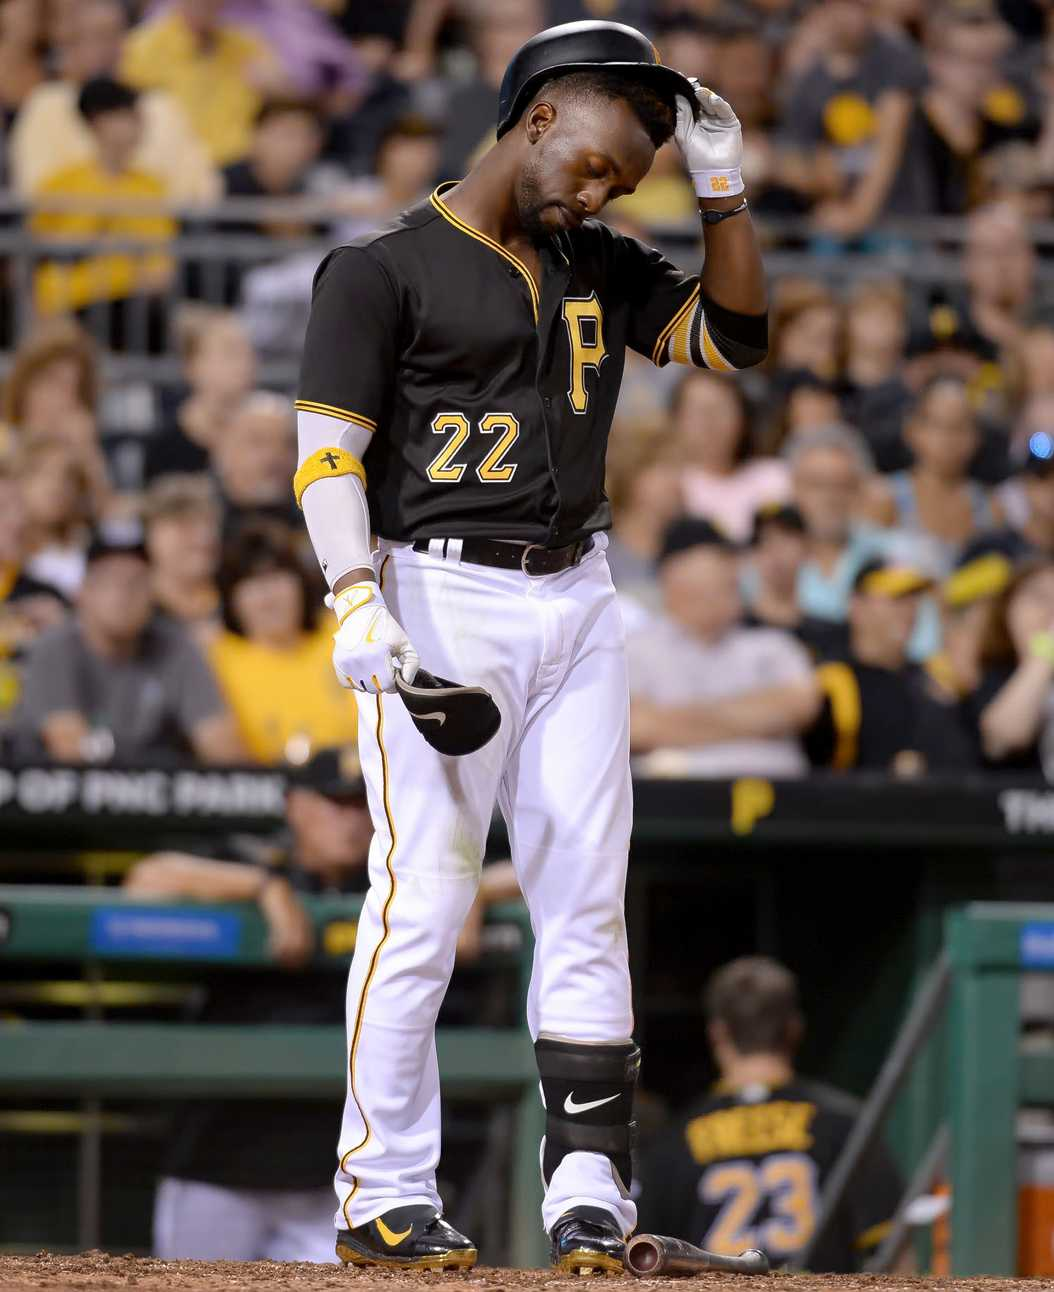 Andrew McCutchen reacts after striking out against the Miami Marlins in the sixth inning Saturday, Aug. 20, 2016, at PNC Park. (TNS)